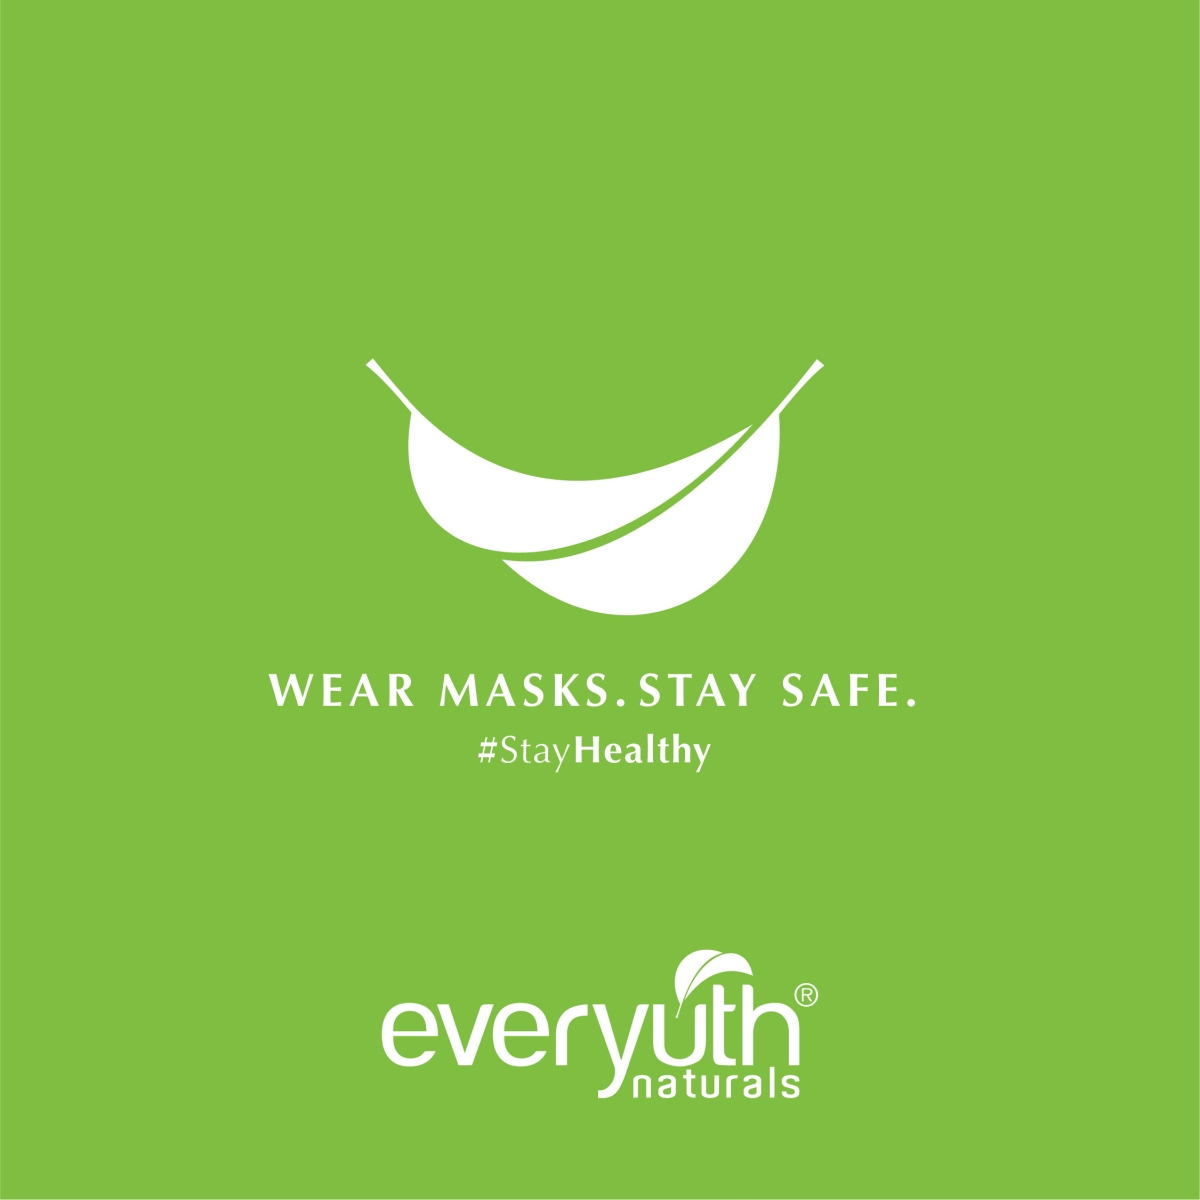 Everyuth Naturals urges consumers to practice #SocialDistancing